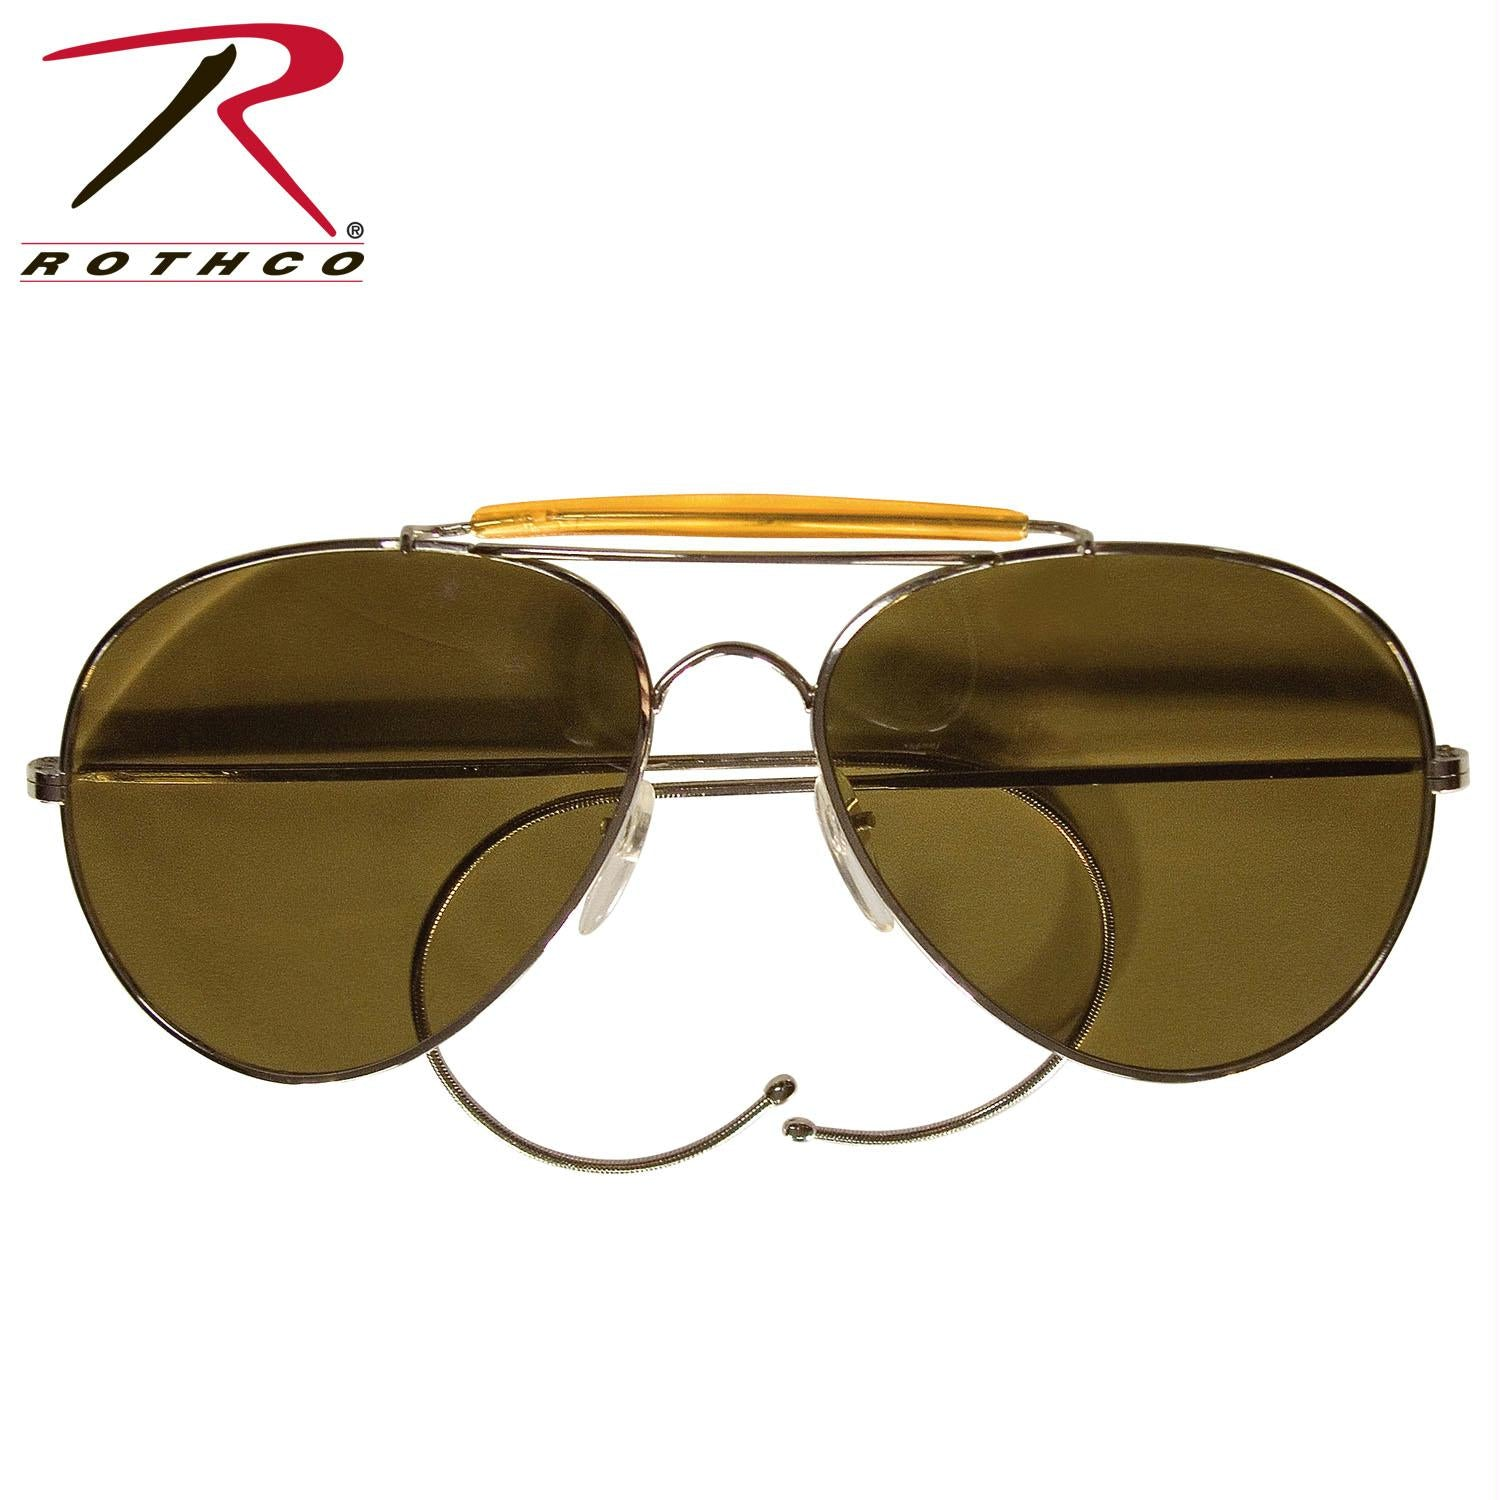 Rothco Aviator Air Force Style Sunglasses - Brown / Military Printed Case & Box